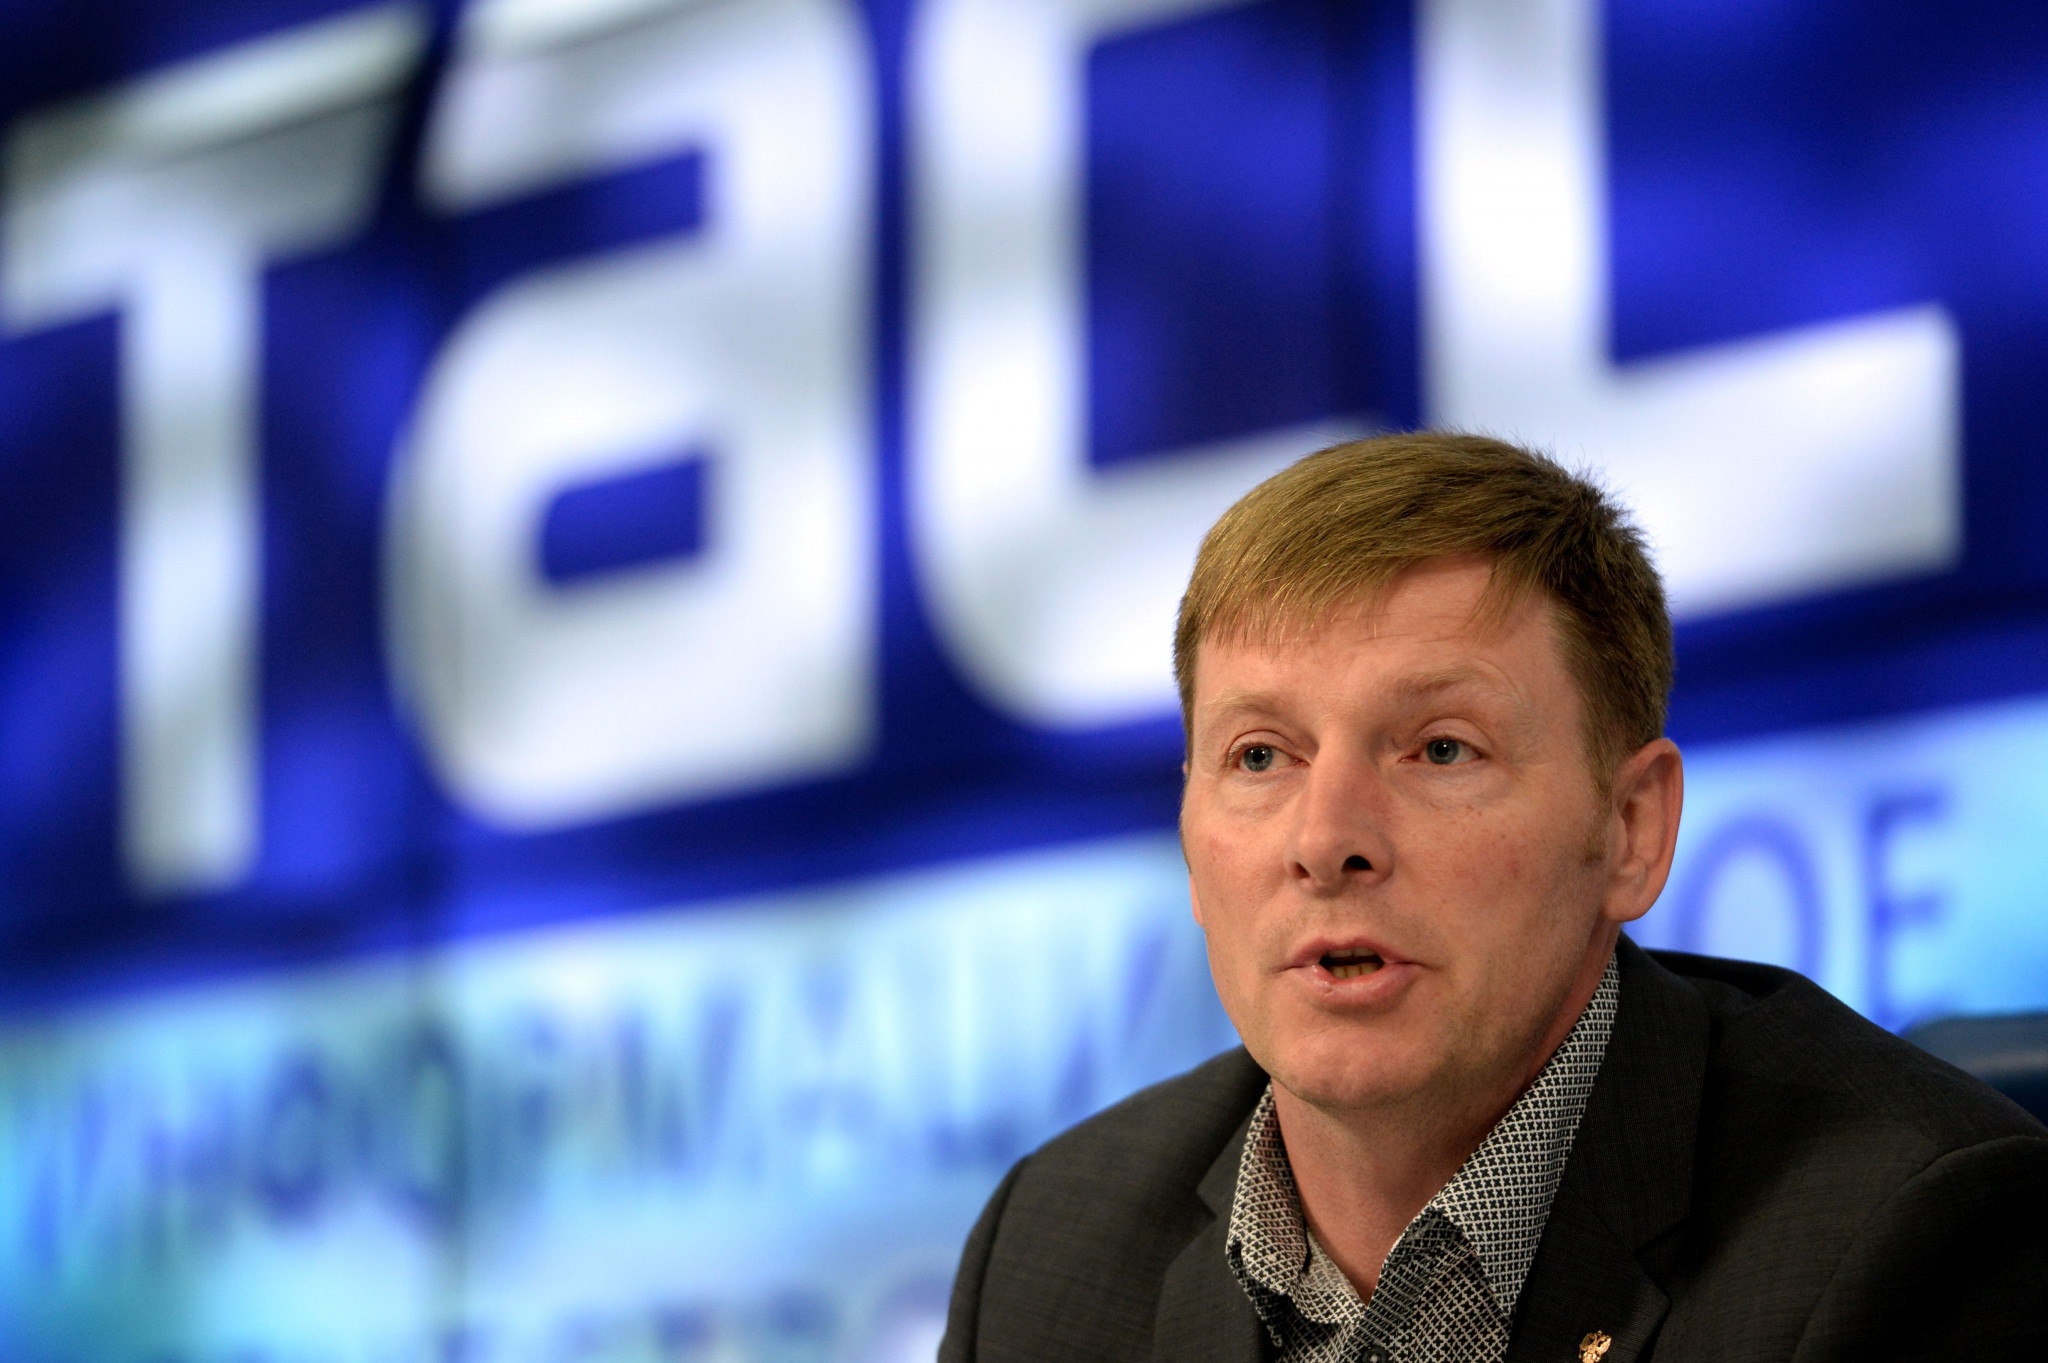 IOC publish full decision justifying disqualification of Russian bobsleigh champion Zubkov